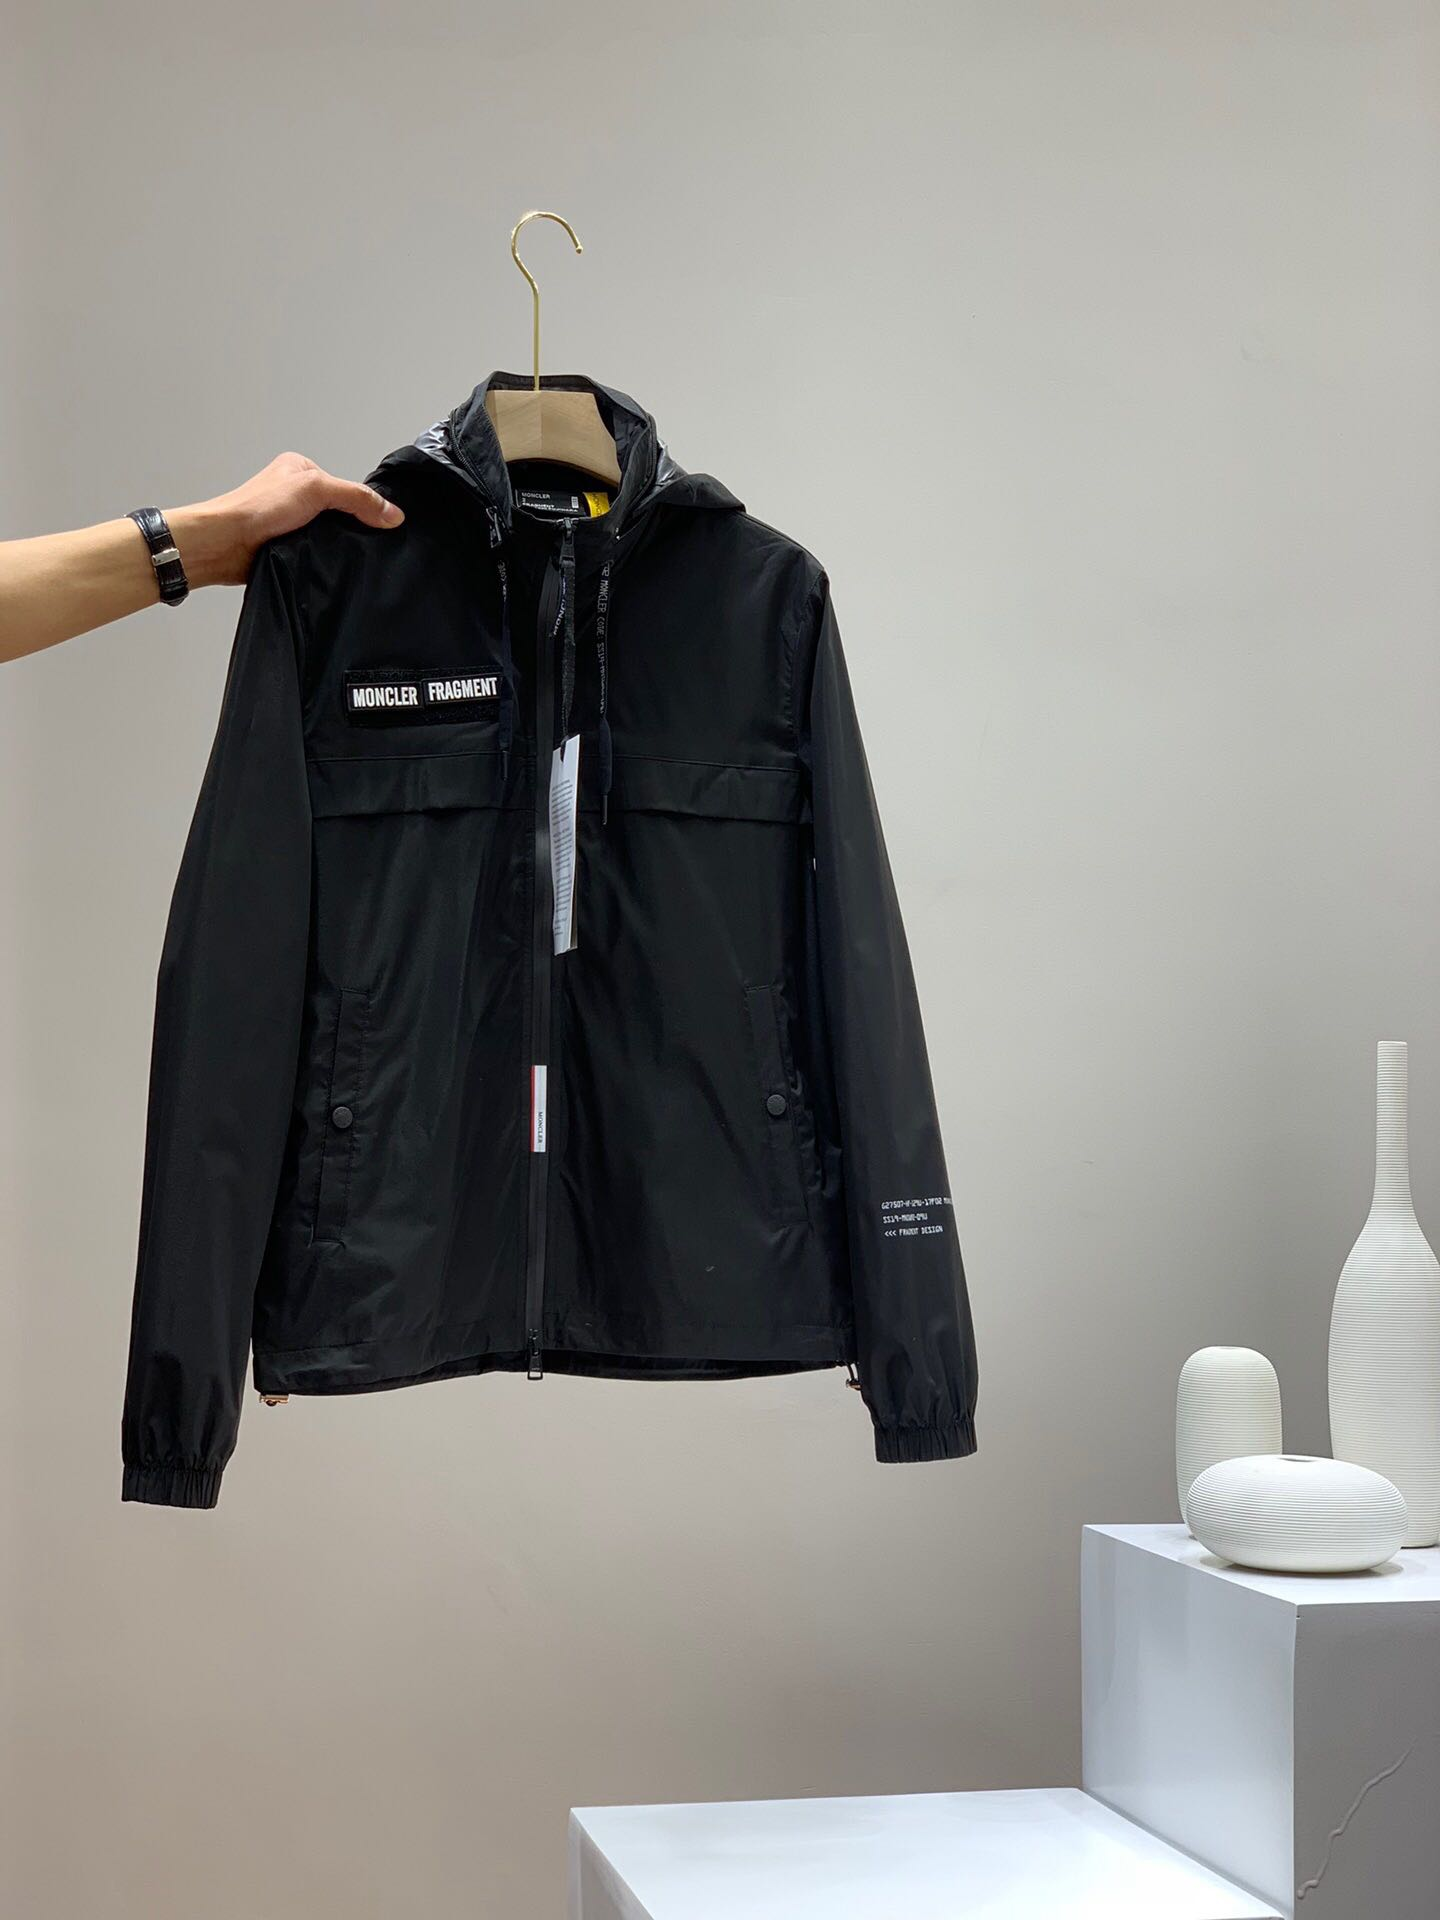 Spring European and American style show style versatile new hooded simple windproof outdoor mens jacket